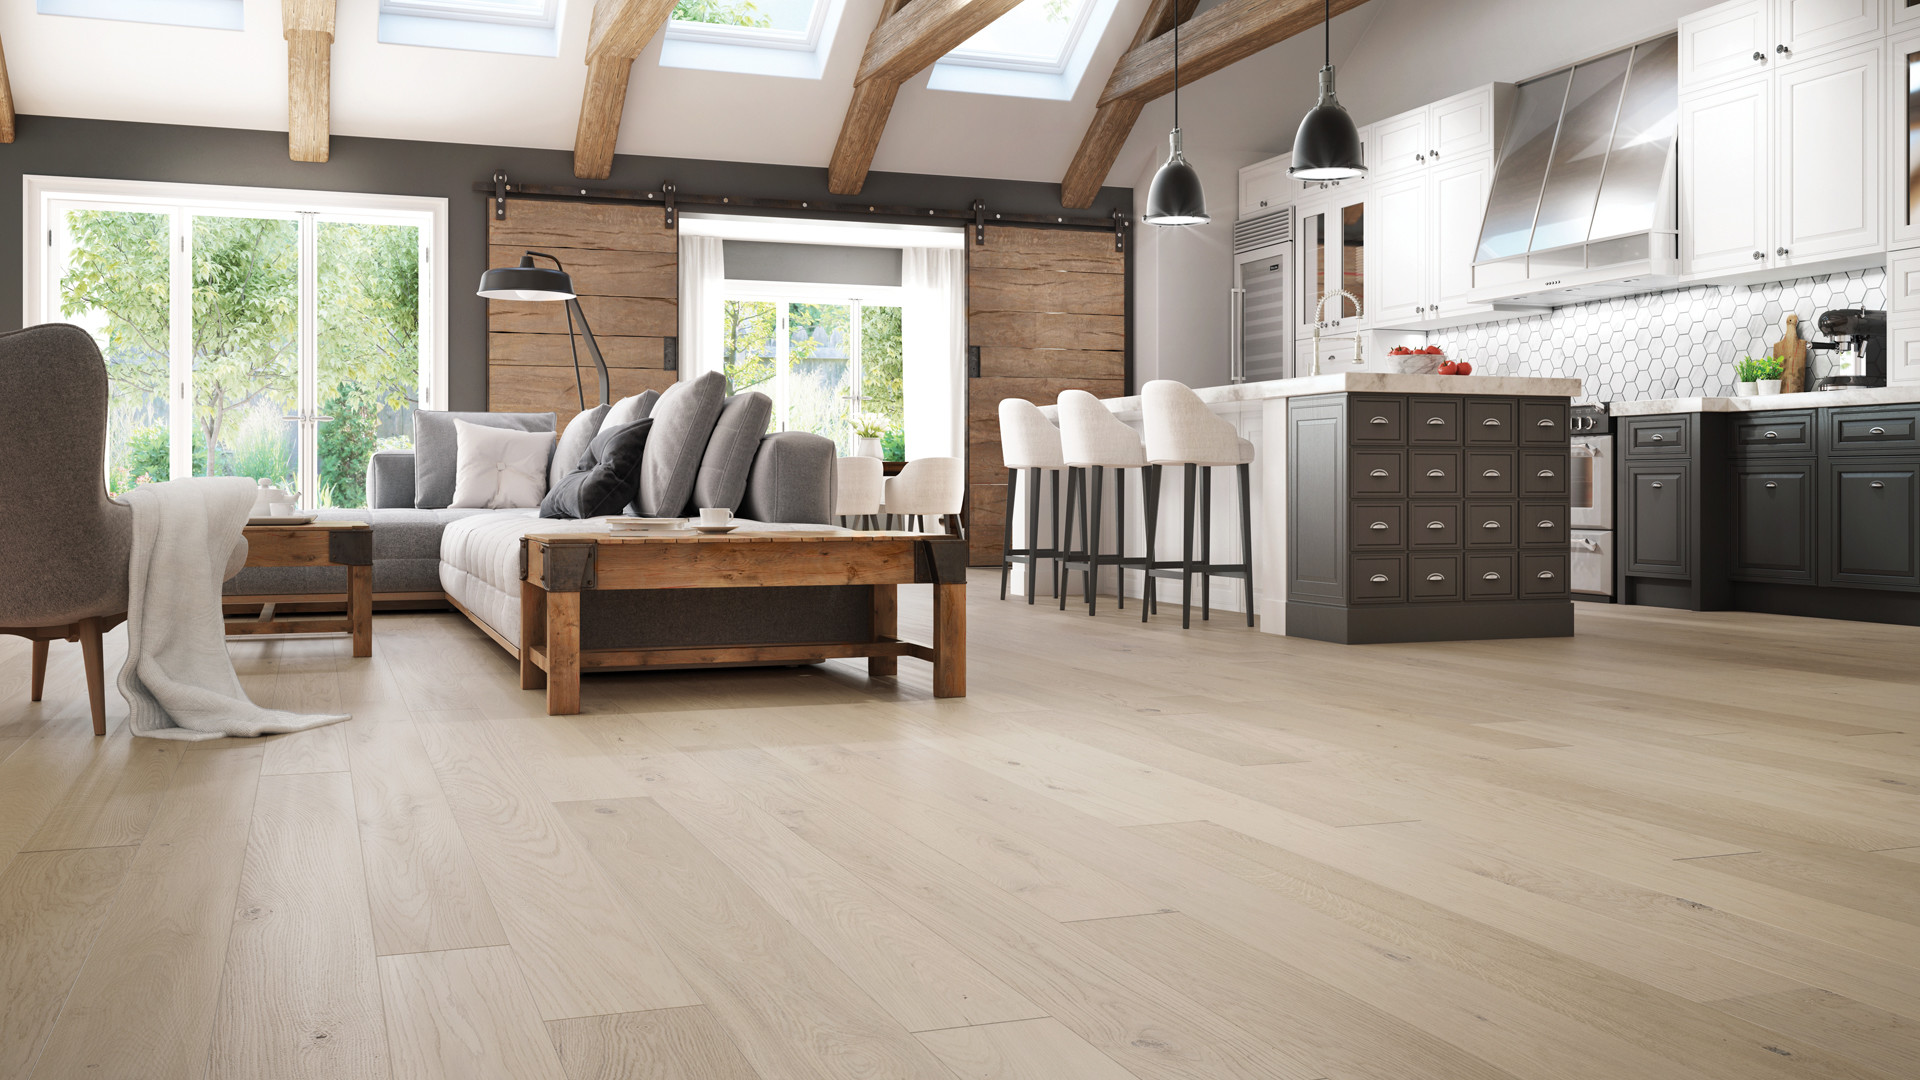 hardwood floor different color than stairs of 4 latest hardwood flooring trends of 2018 lauzon flooring regarding this technology brings your hardwood floors and well being to a new level by improving indoor air quality by up to 85 and decomposing up to 99 6 of